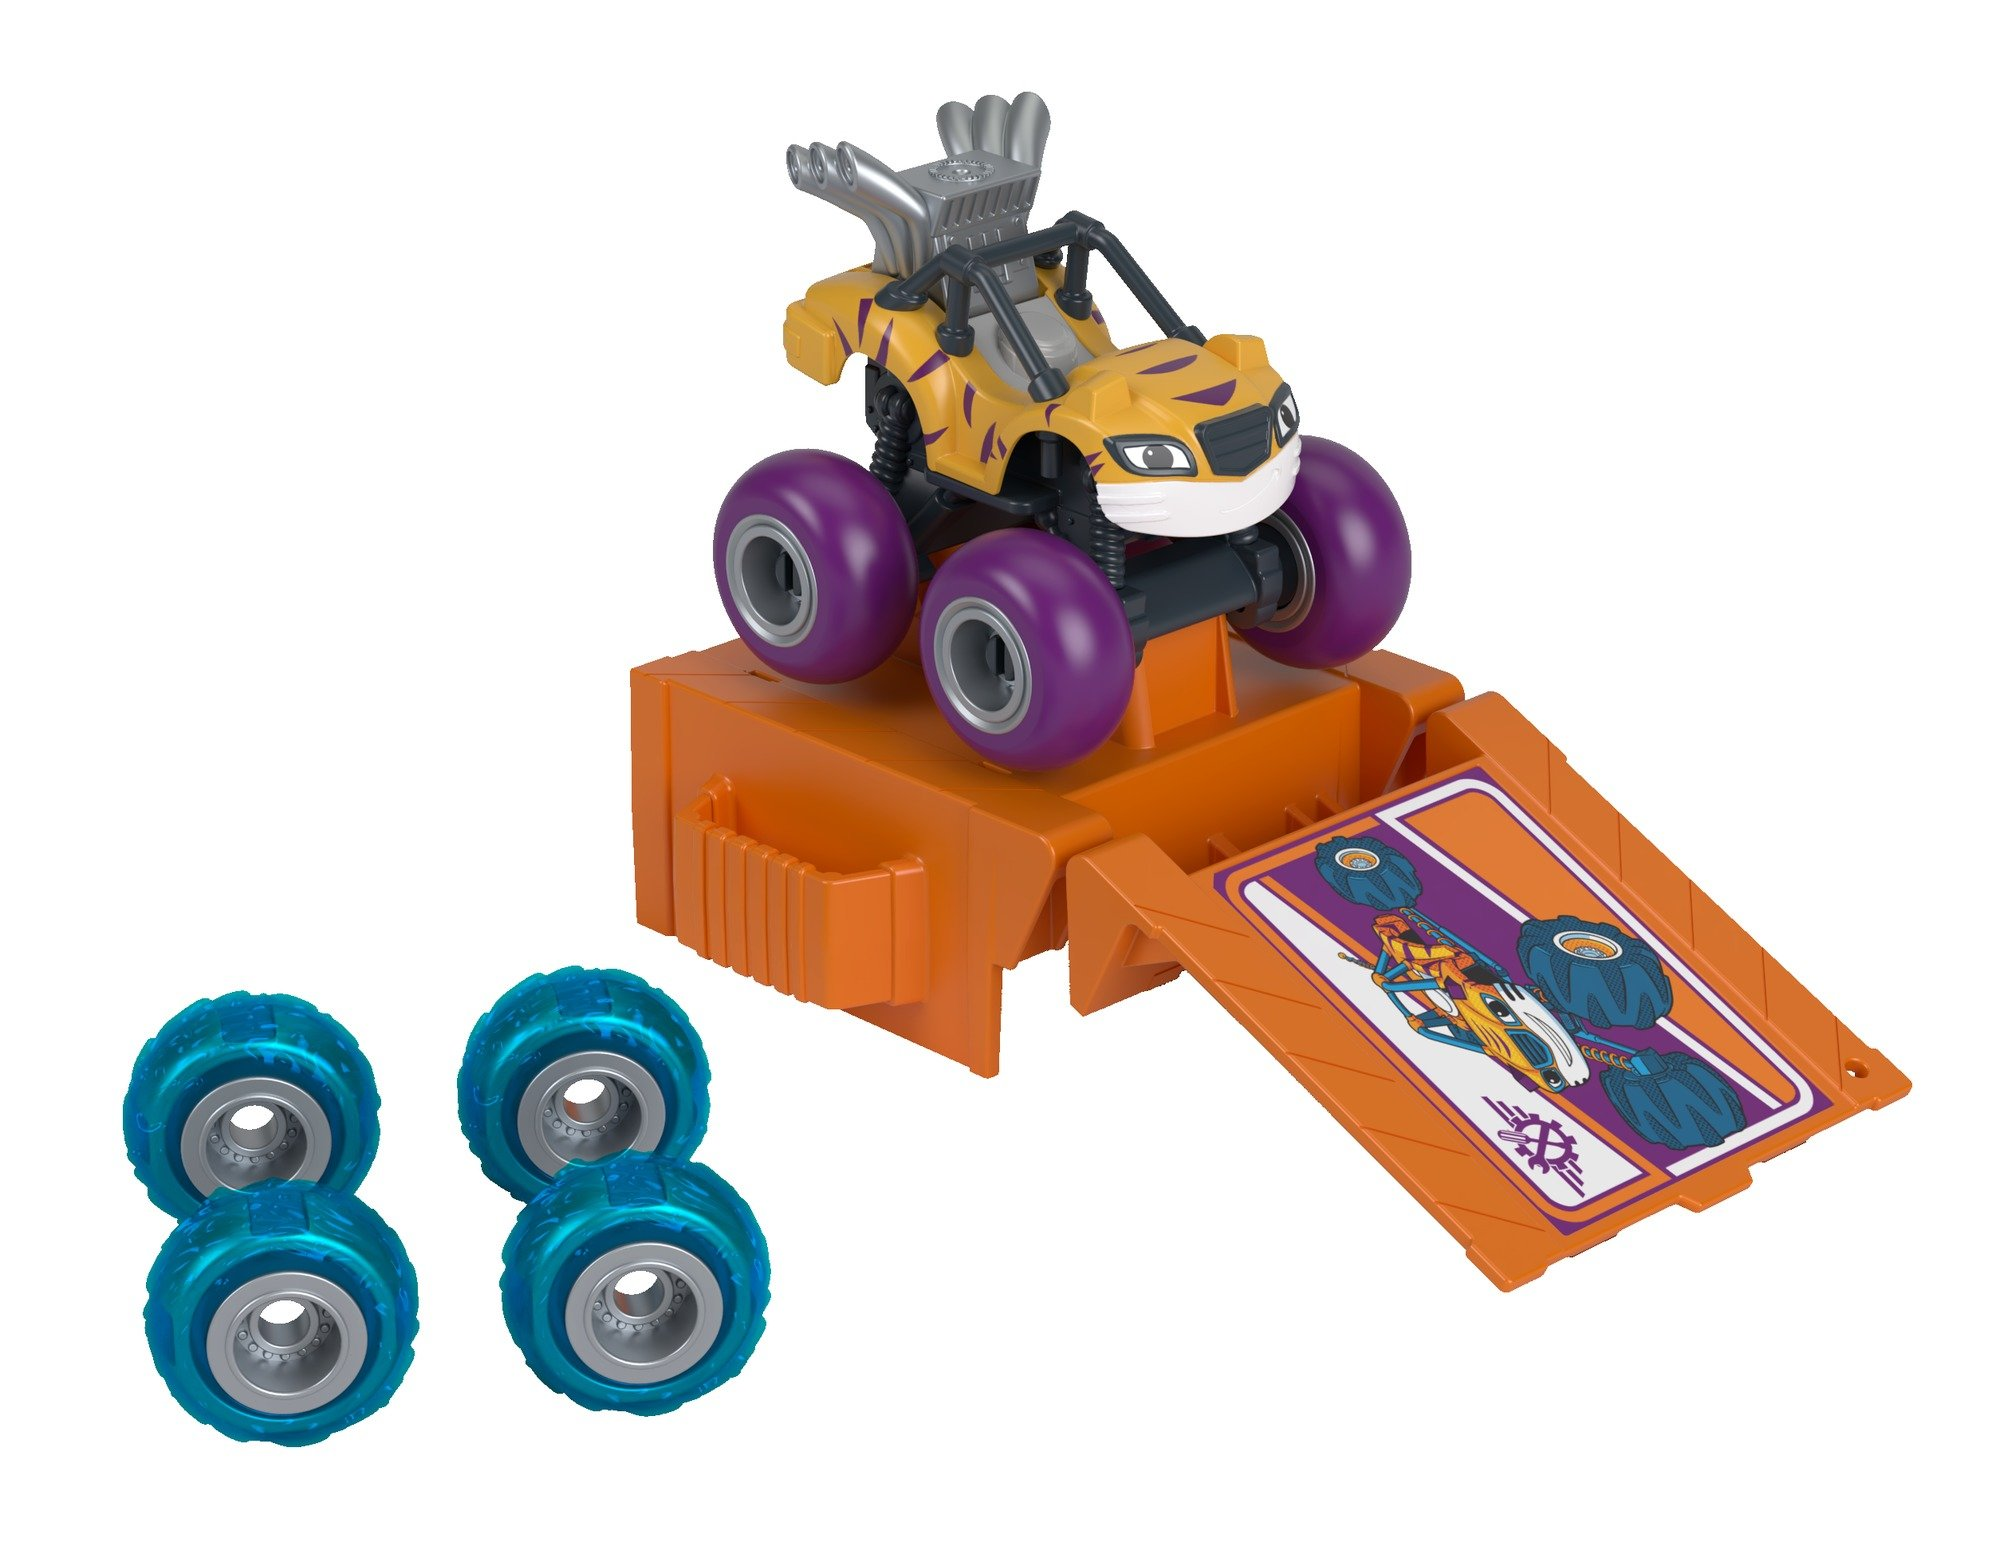 Fisher-Price Nickelodeon Blaze & the Monster Machines Tune-Up Tires, Stripes